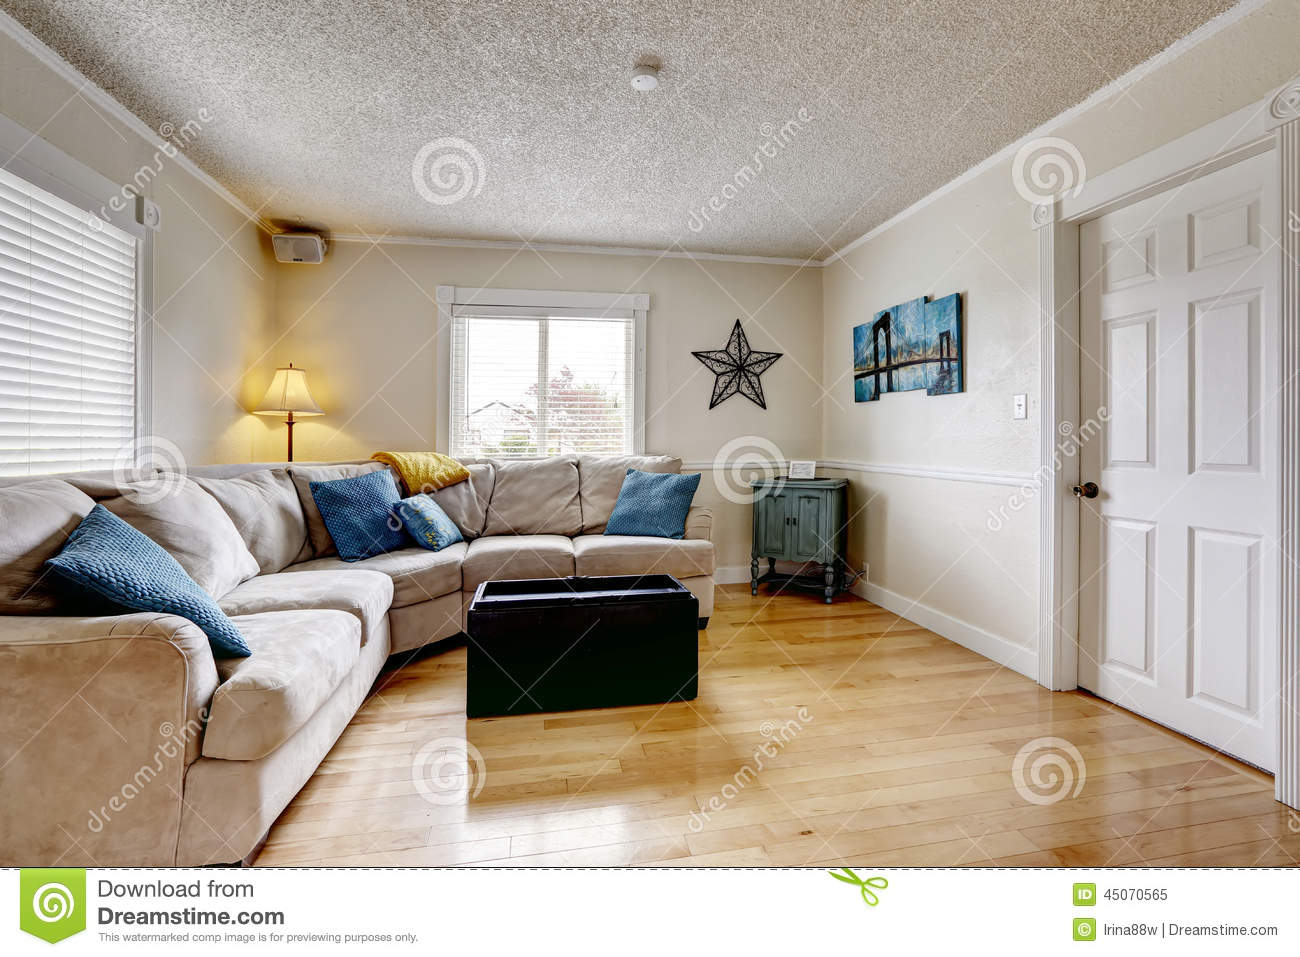 Living Room With Beige Sofa And Blue Pillows. American, Window.